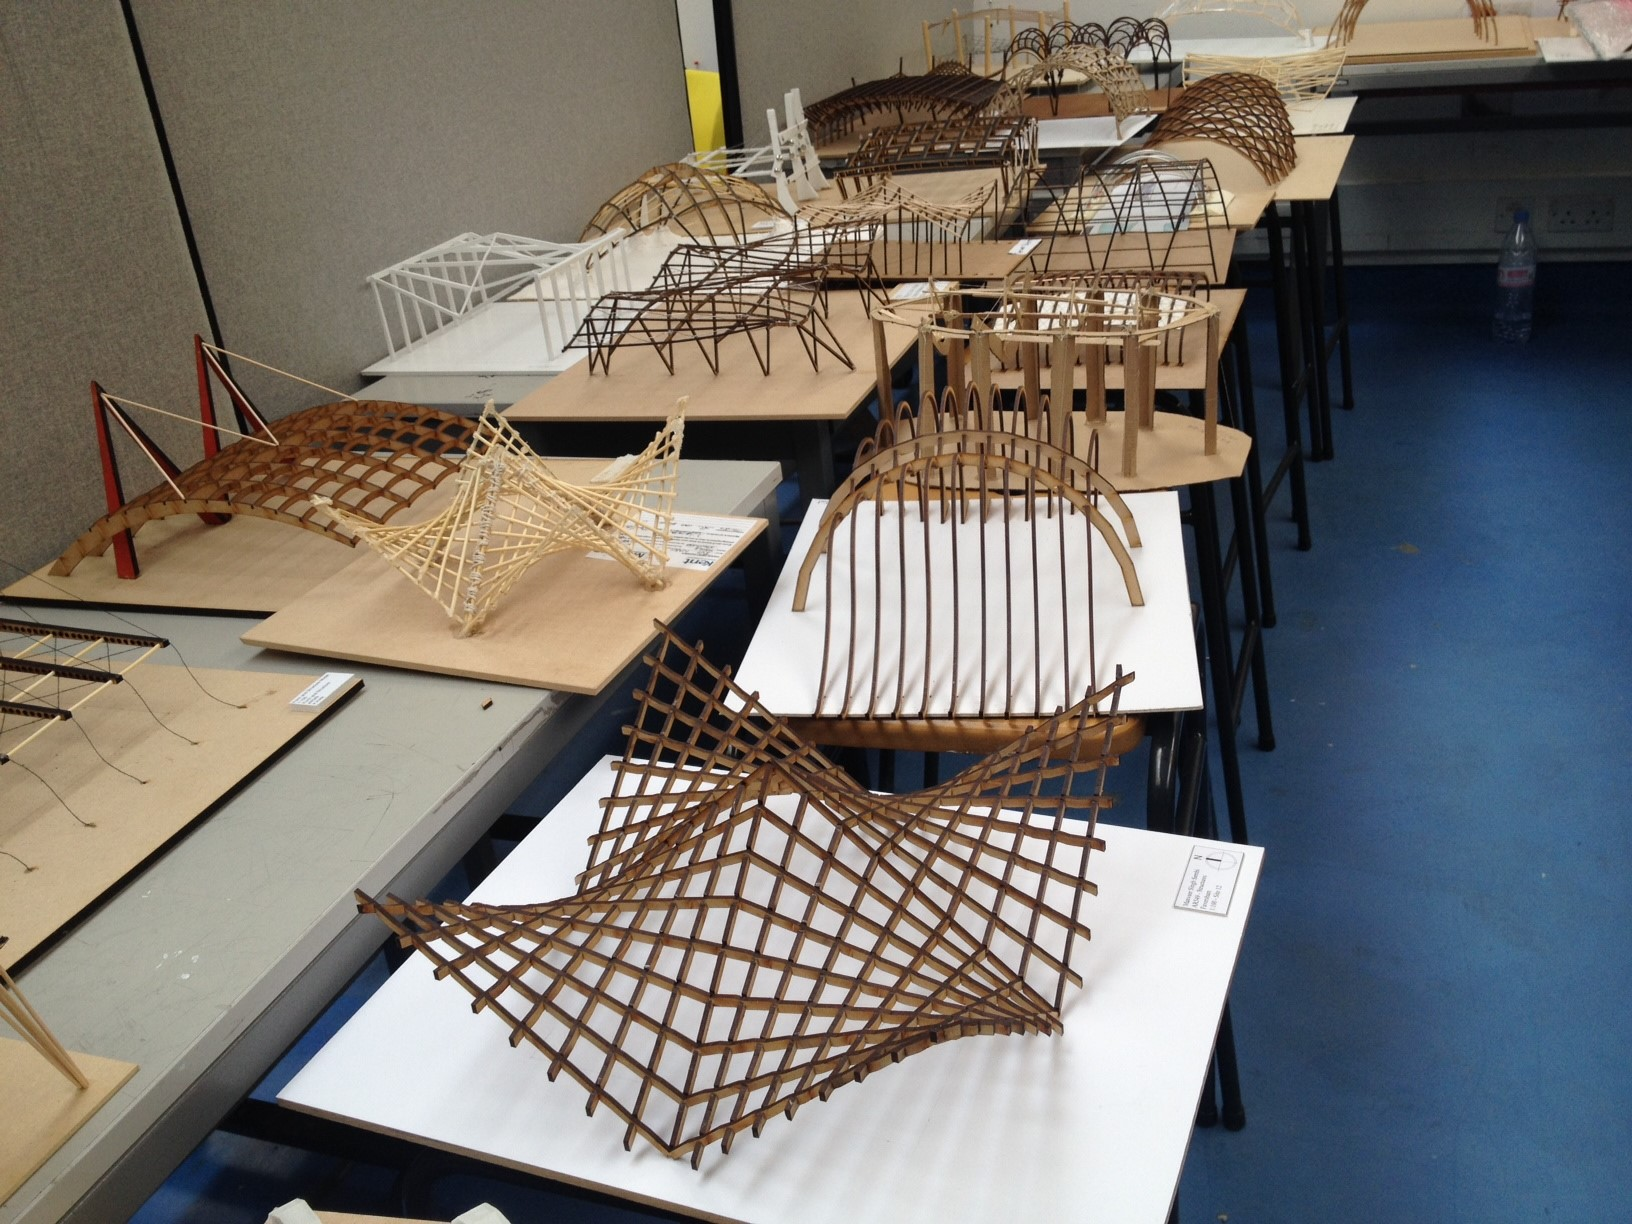 Kent school of architecture the latest news from ksa for Form architecture